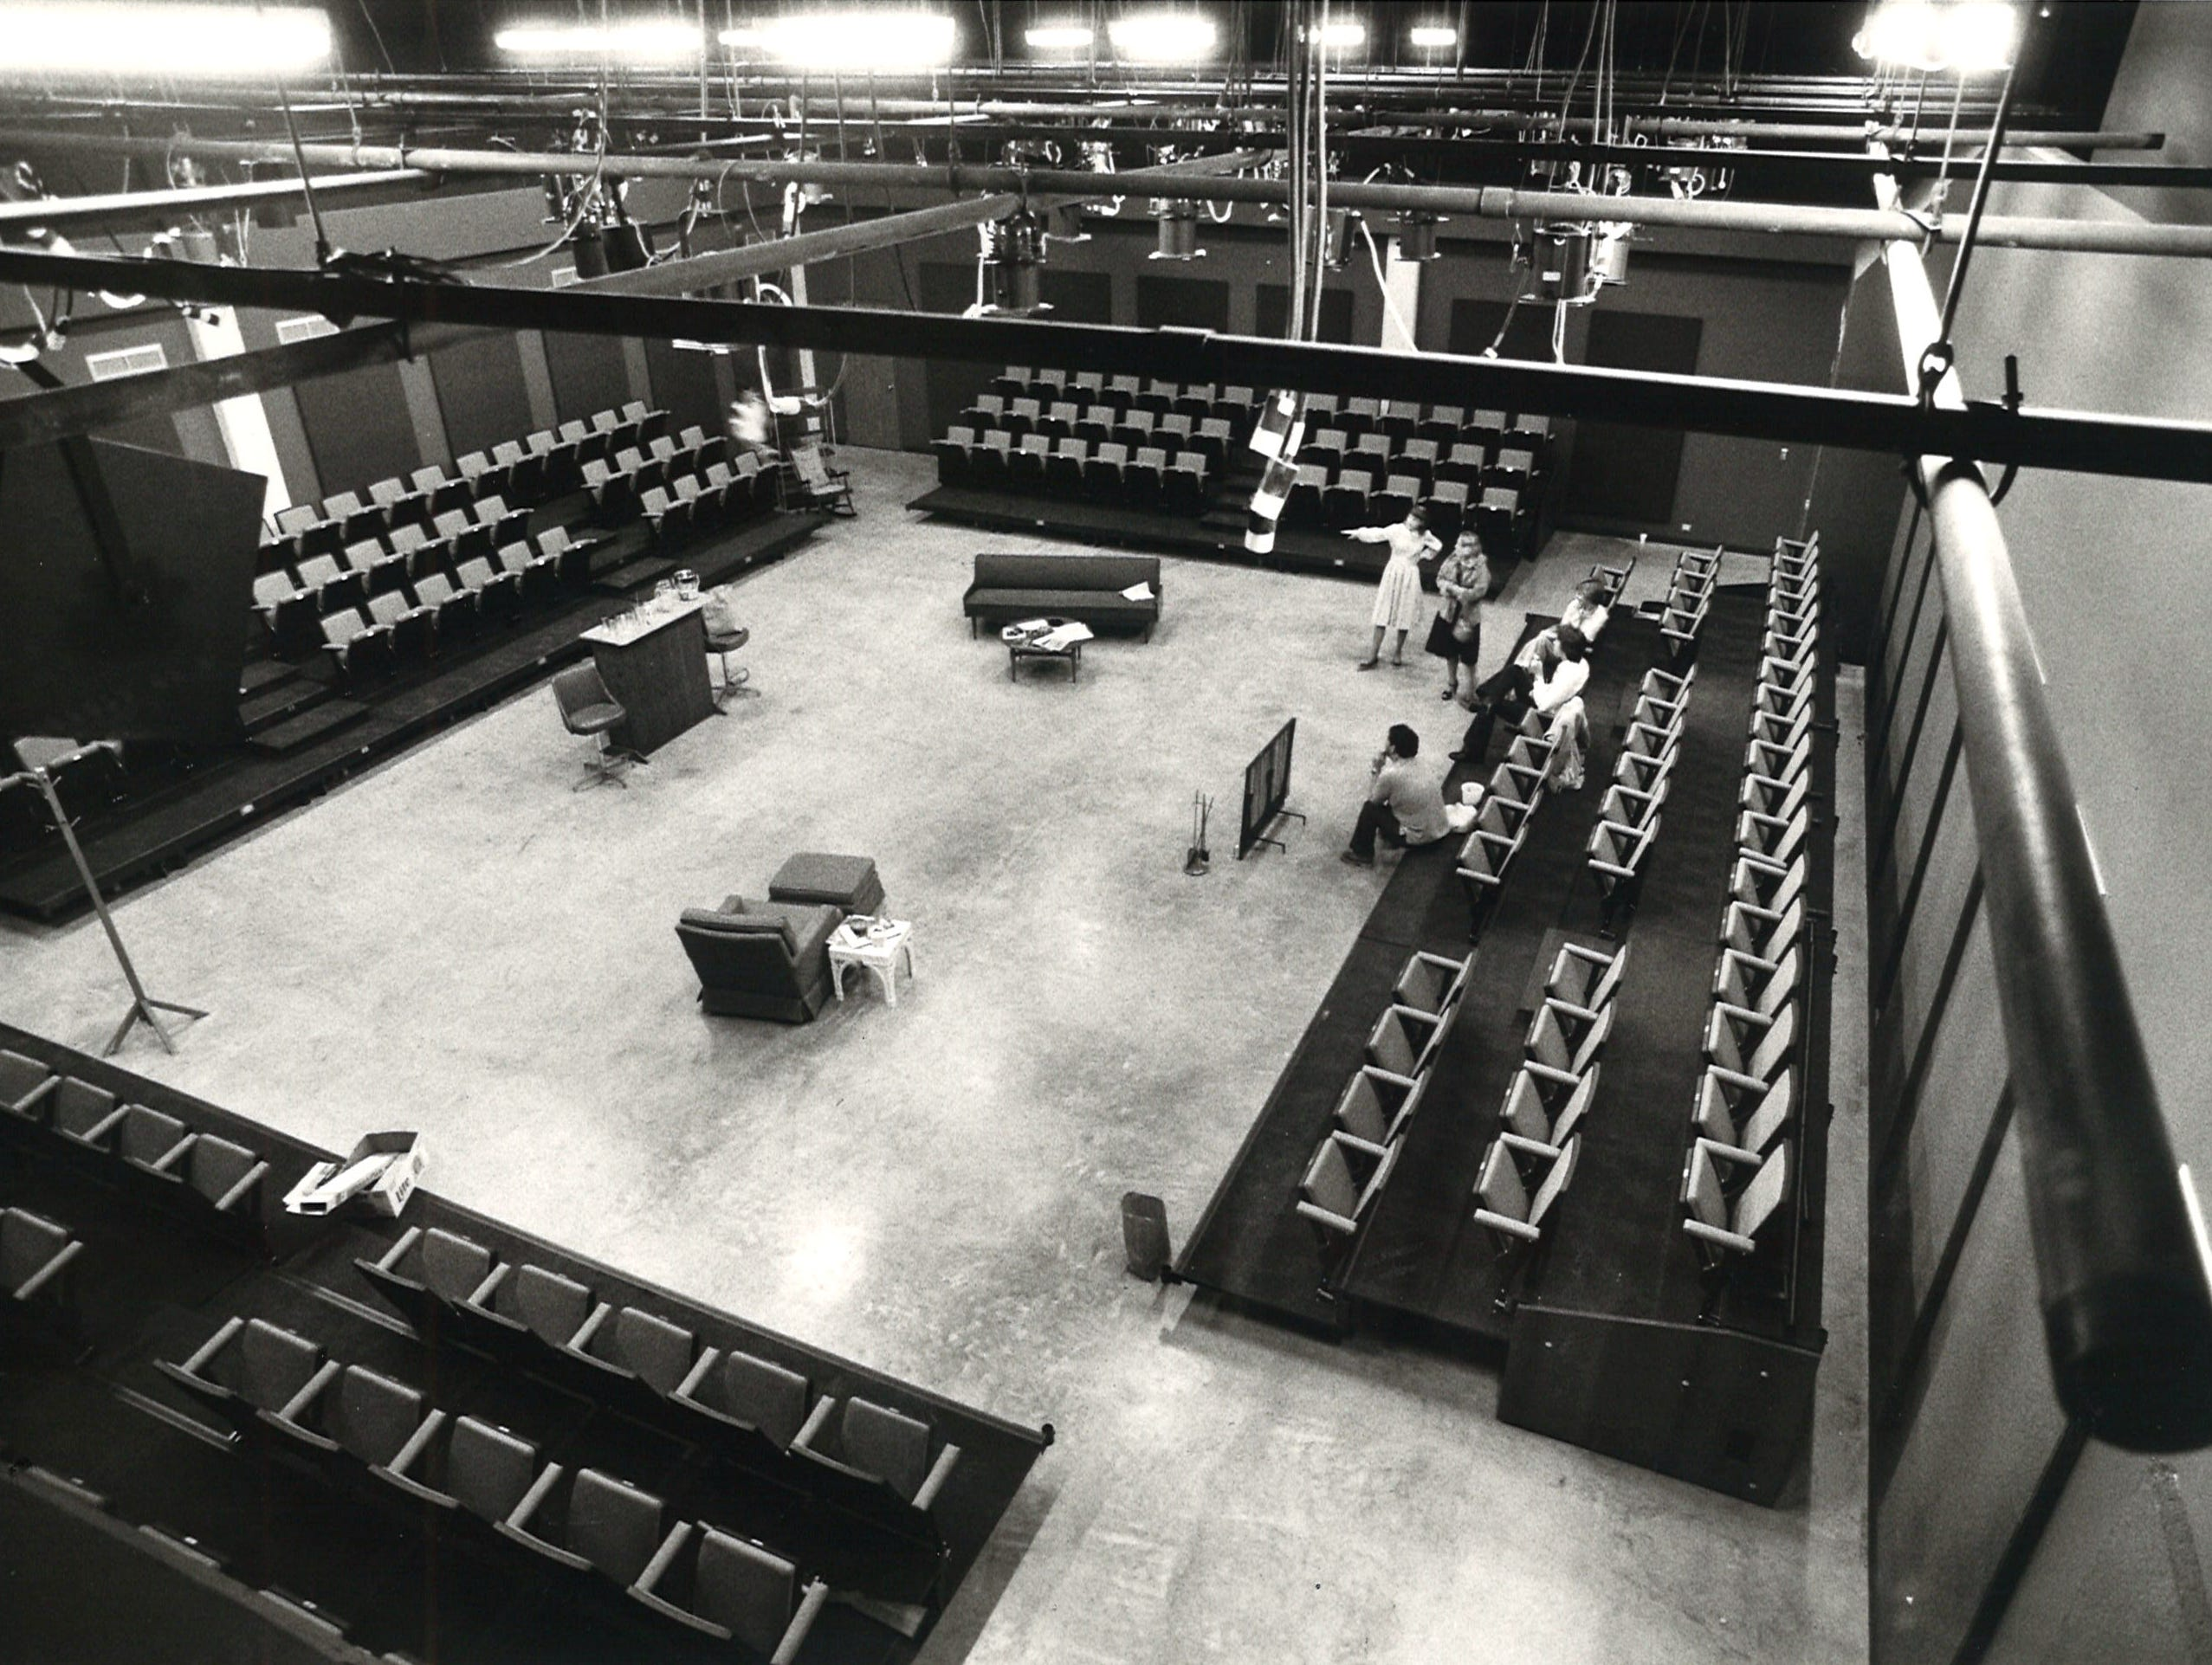 Rehearsal takes place in the experimental theater space at Corpus Christi State University's Center for the Arts building in March 1979.